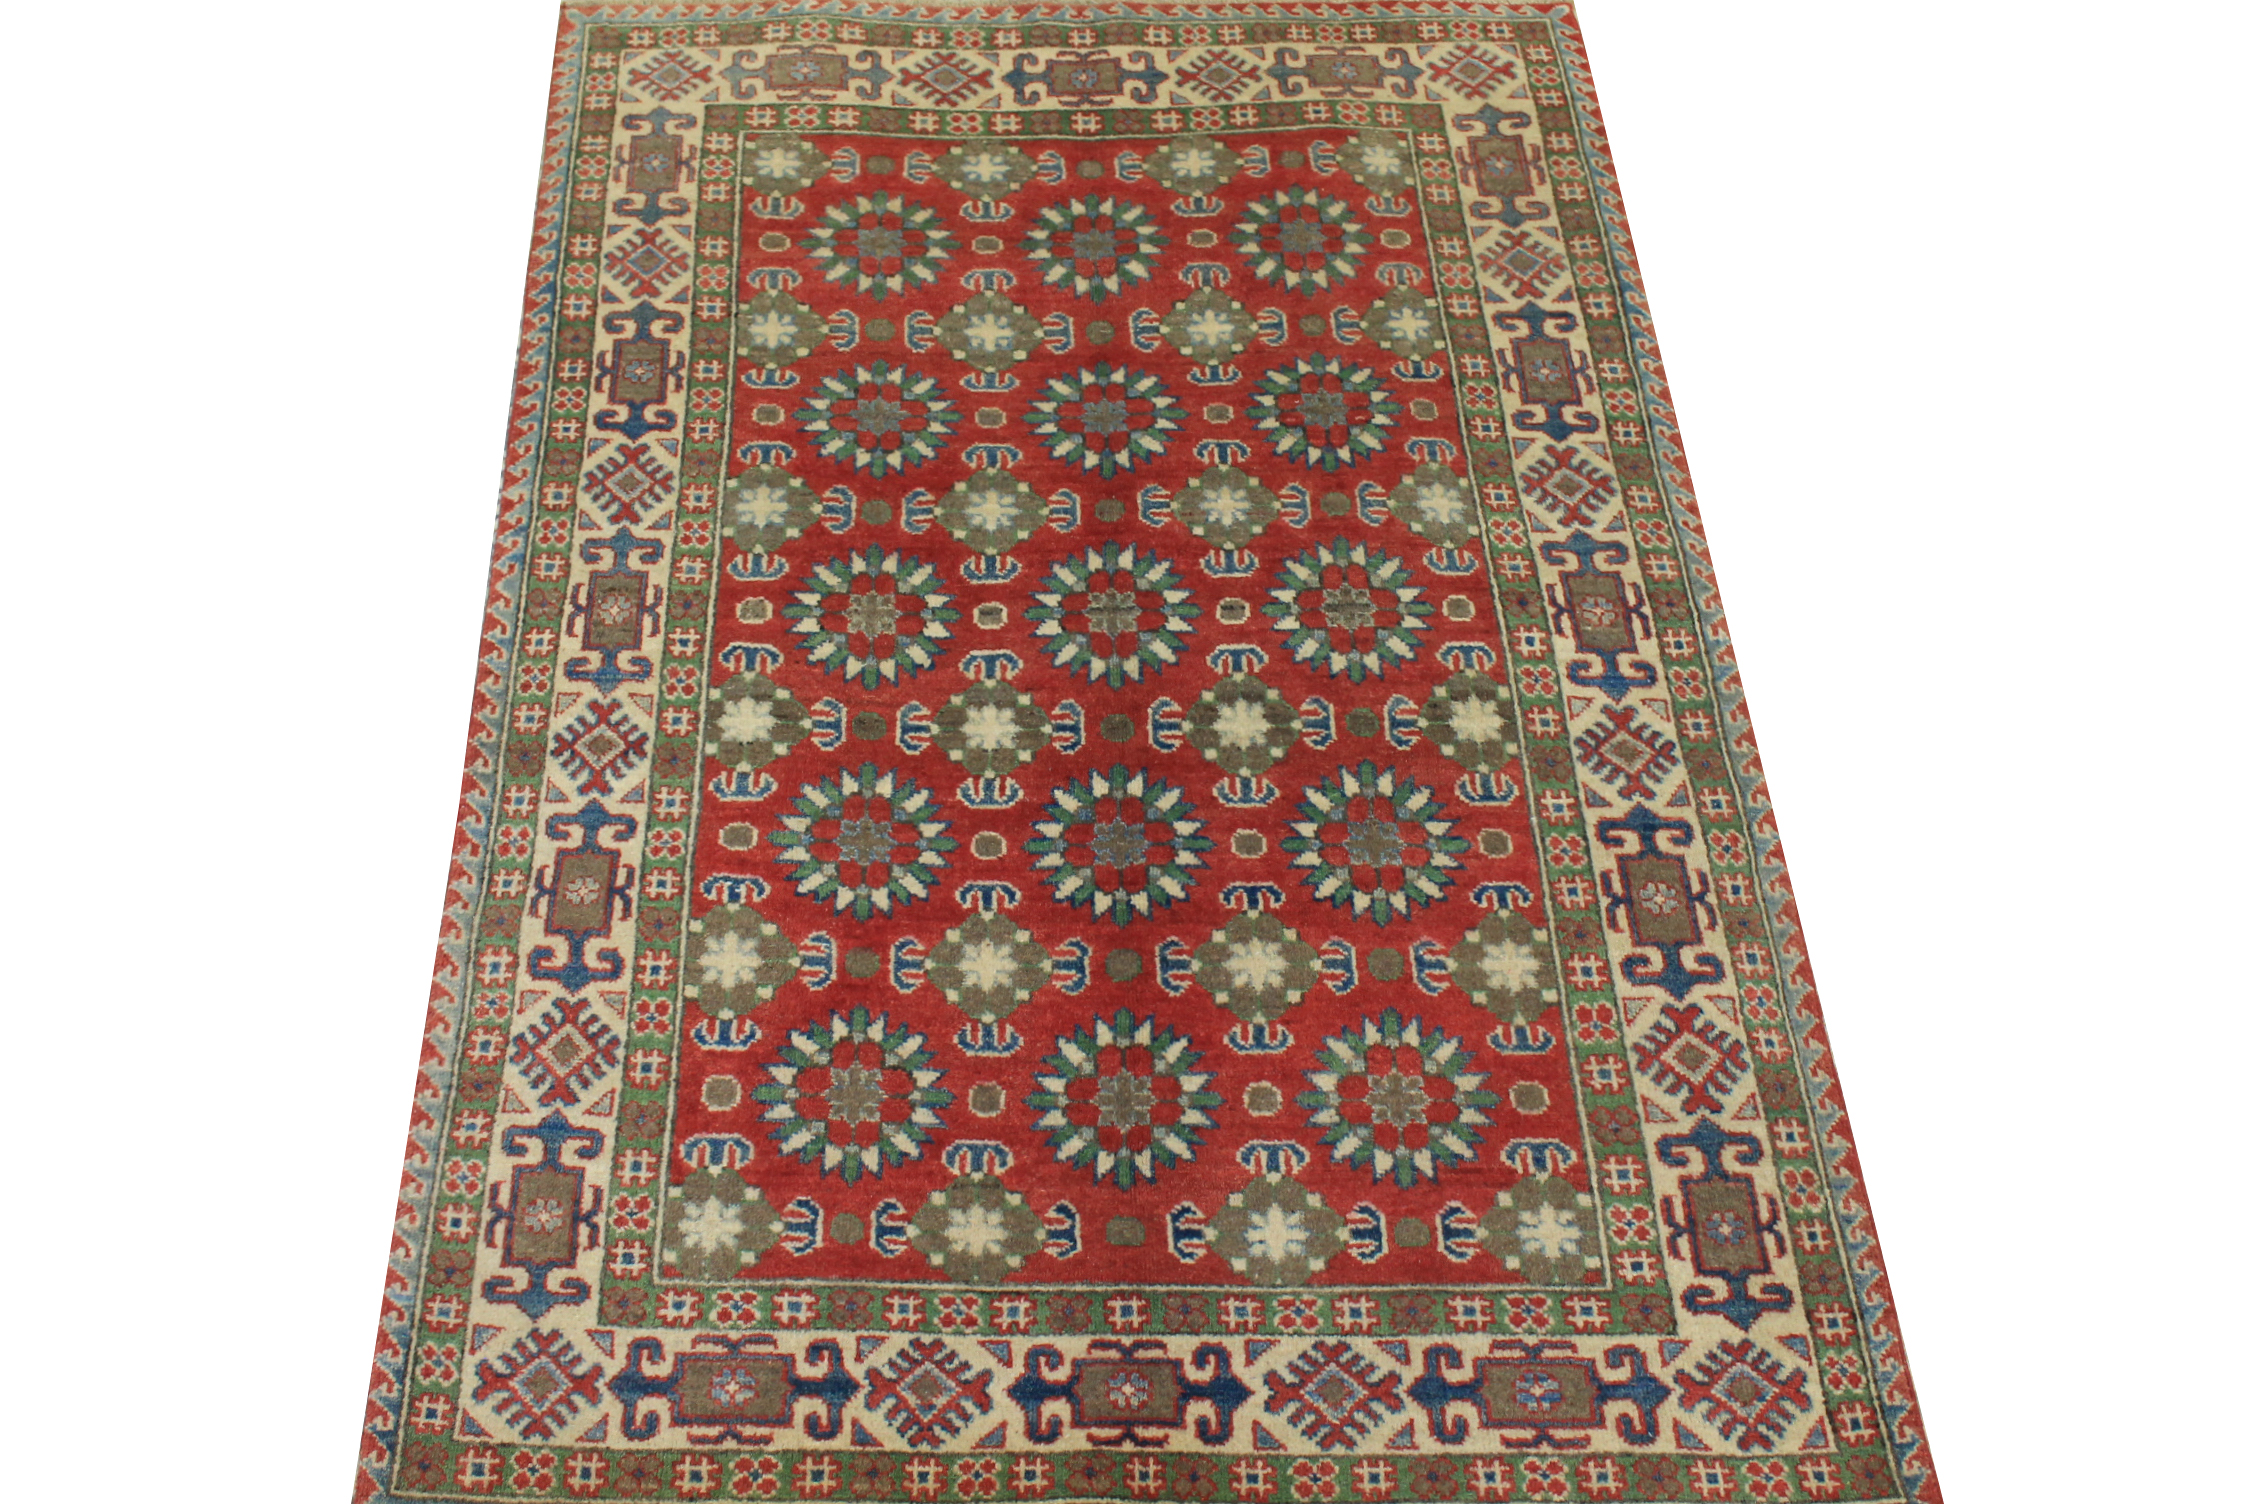 4x6 Kazak Hand Knotted Wool Area Rug - MR024529